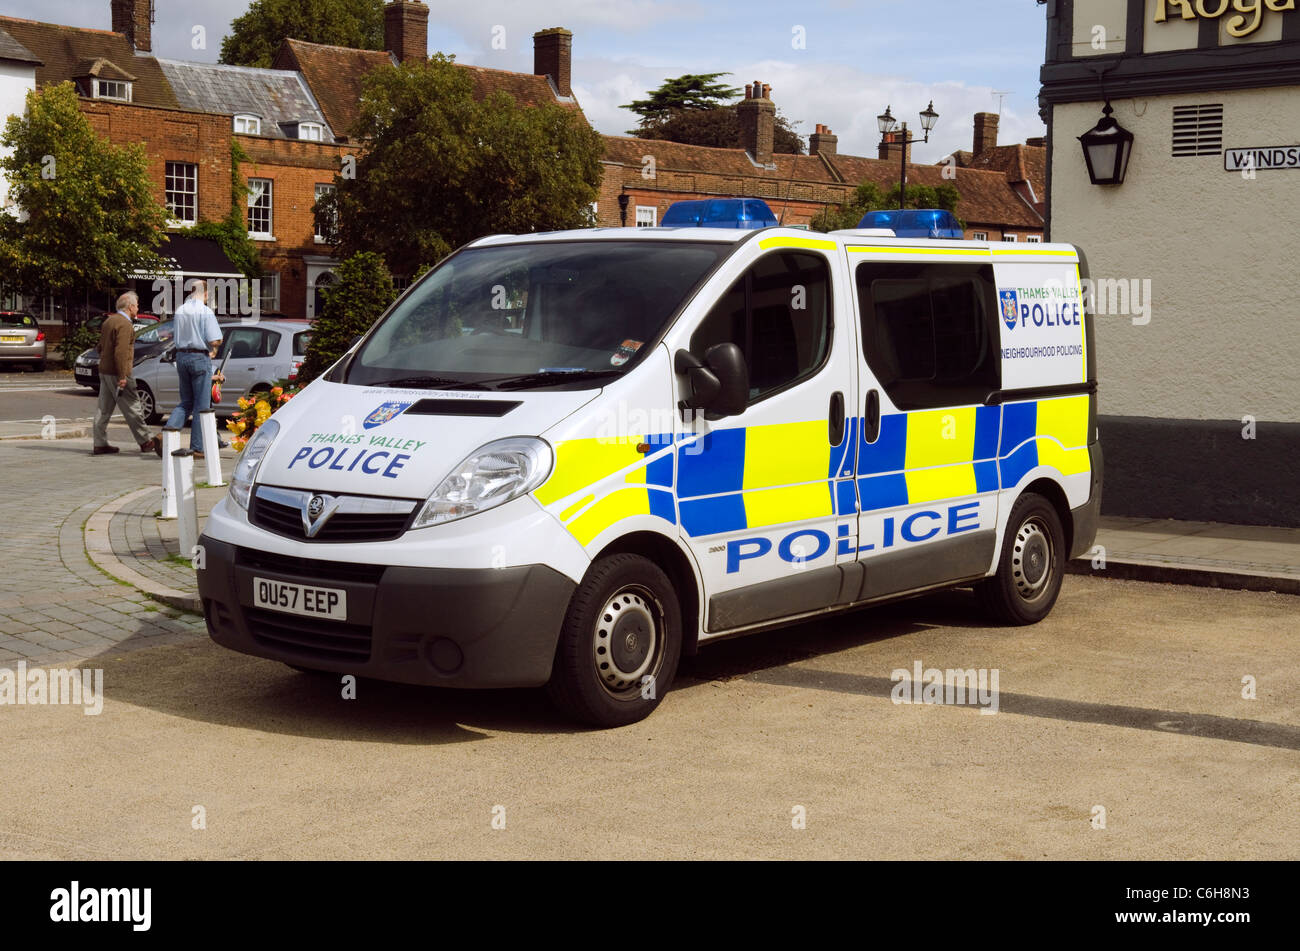 A Thames Valley Police van parked at old town Beaconsfield UK - Stock Image